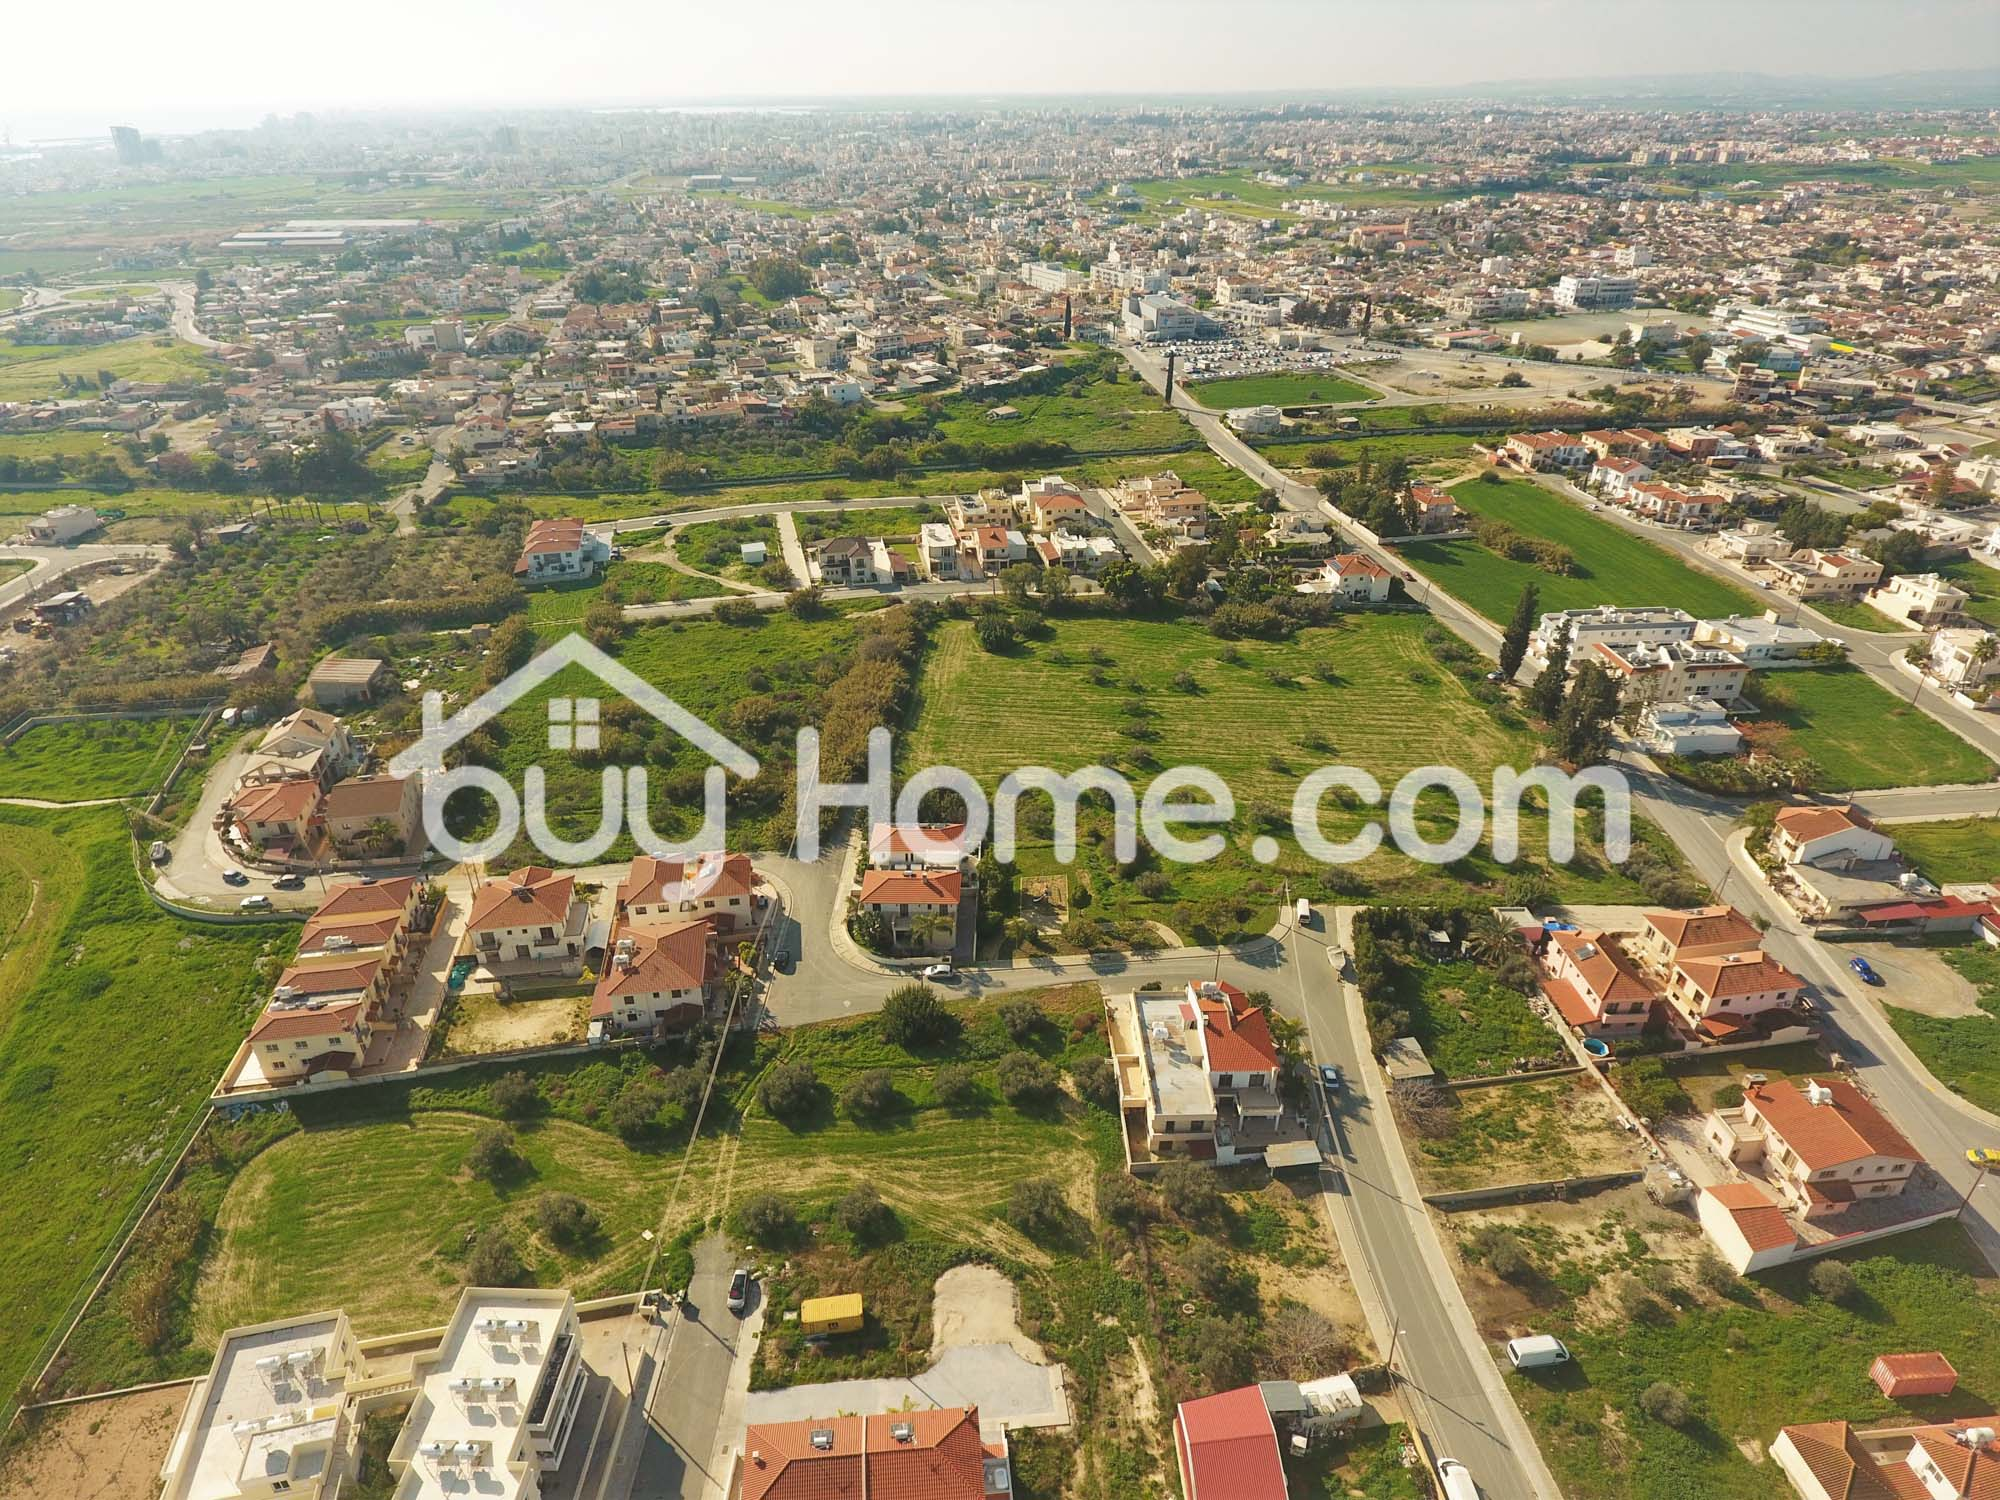 Commercial Plot Livadia 981 m2 | BuyHome